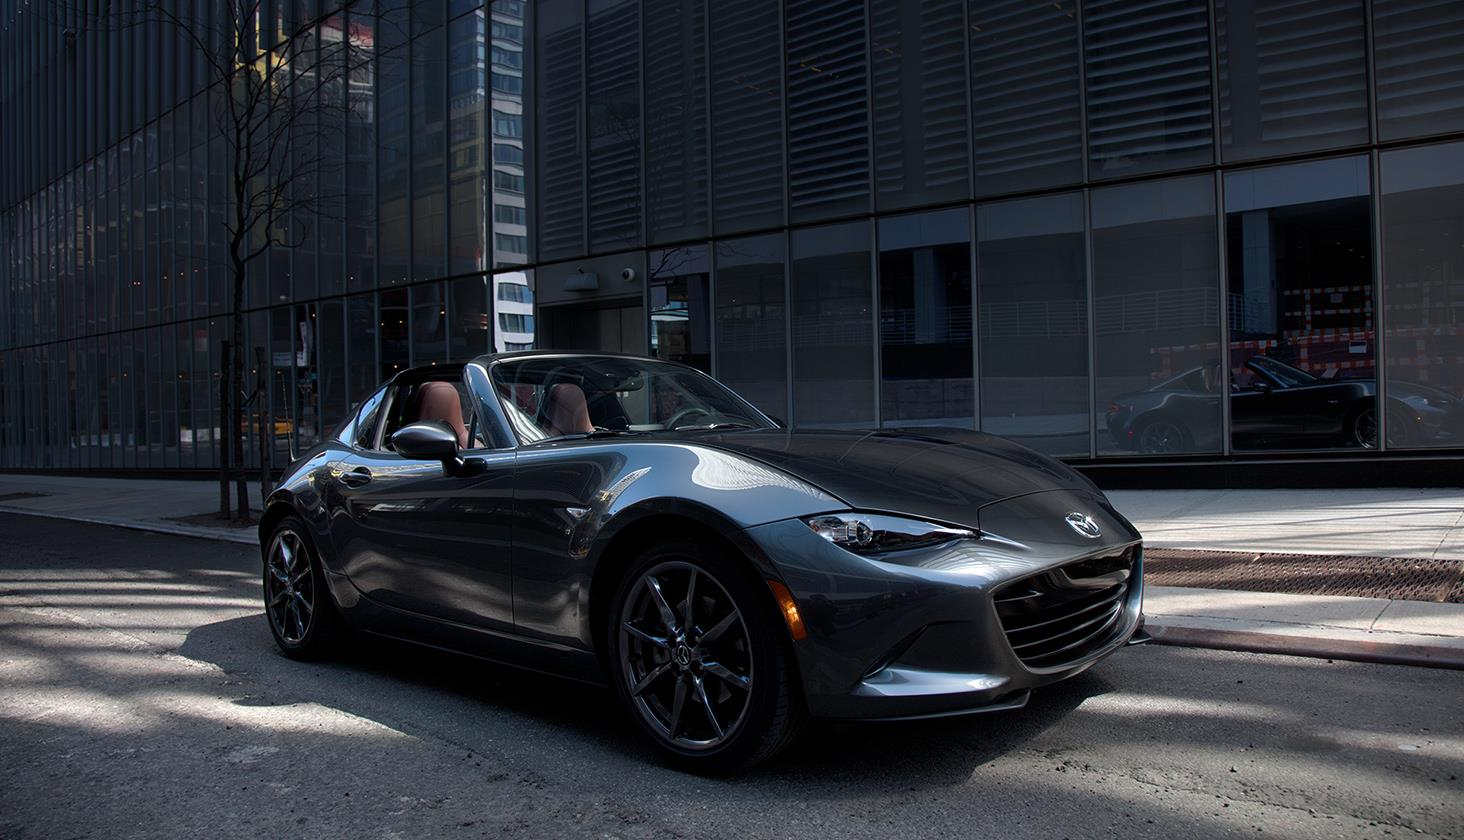 Delightful At A Time When Other Automakers Are Scrambling To Produce The Latest  Technology In Hybrids And Electric Vehicles (EVs), Mazda Takes Stock Of The  Future And ...